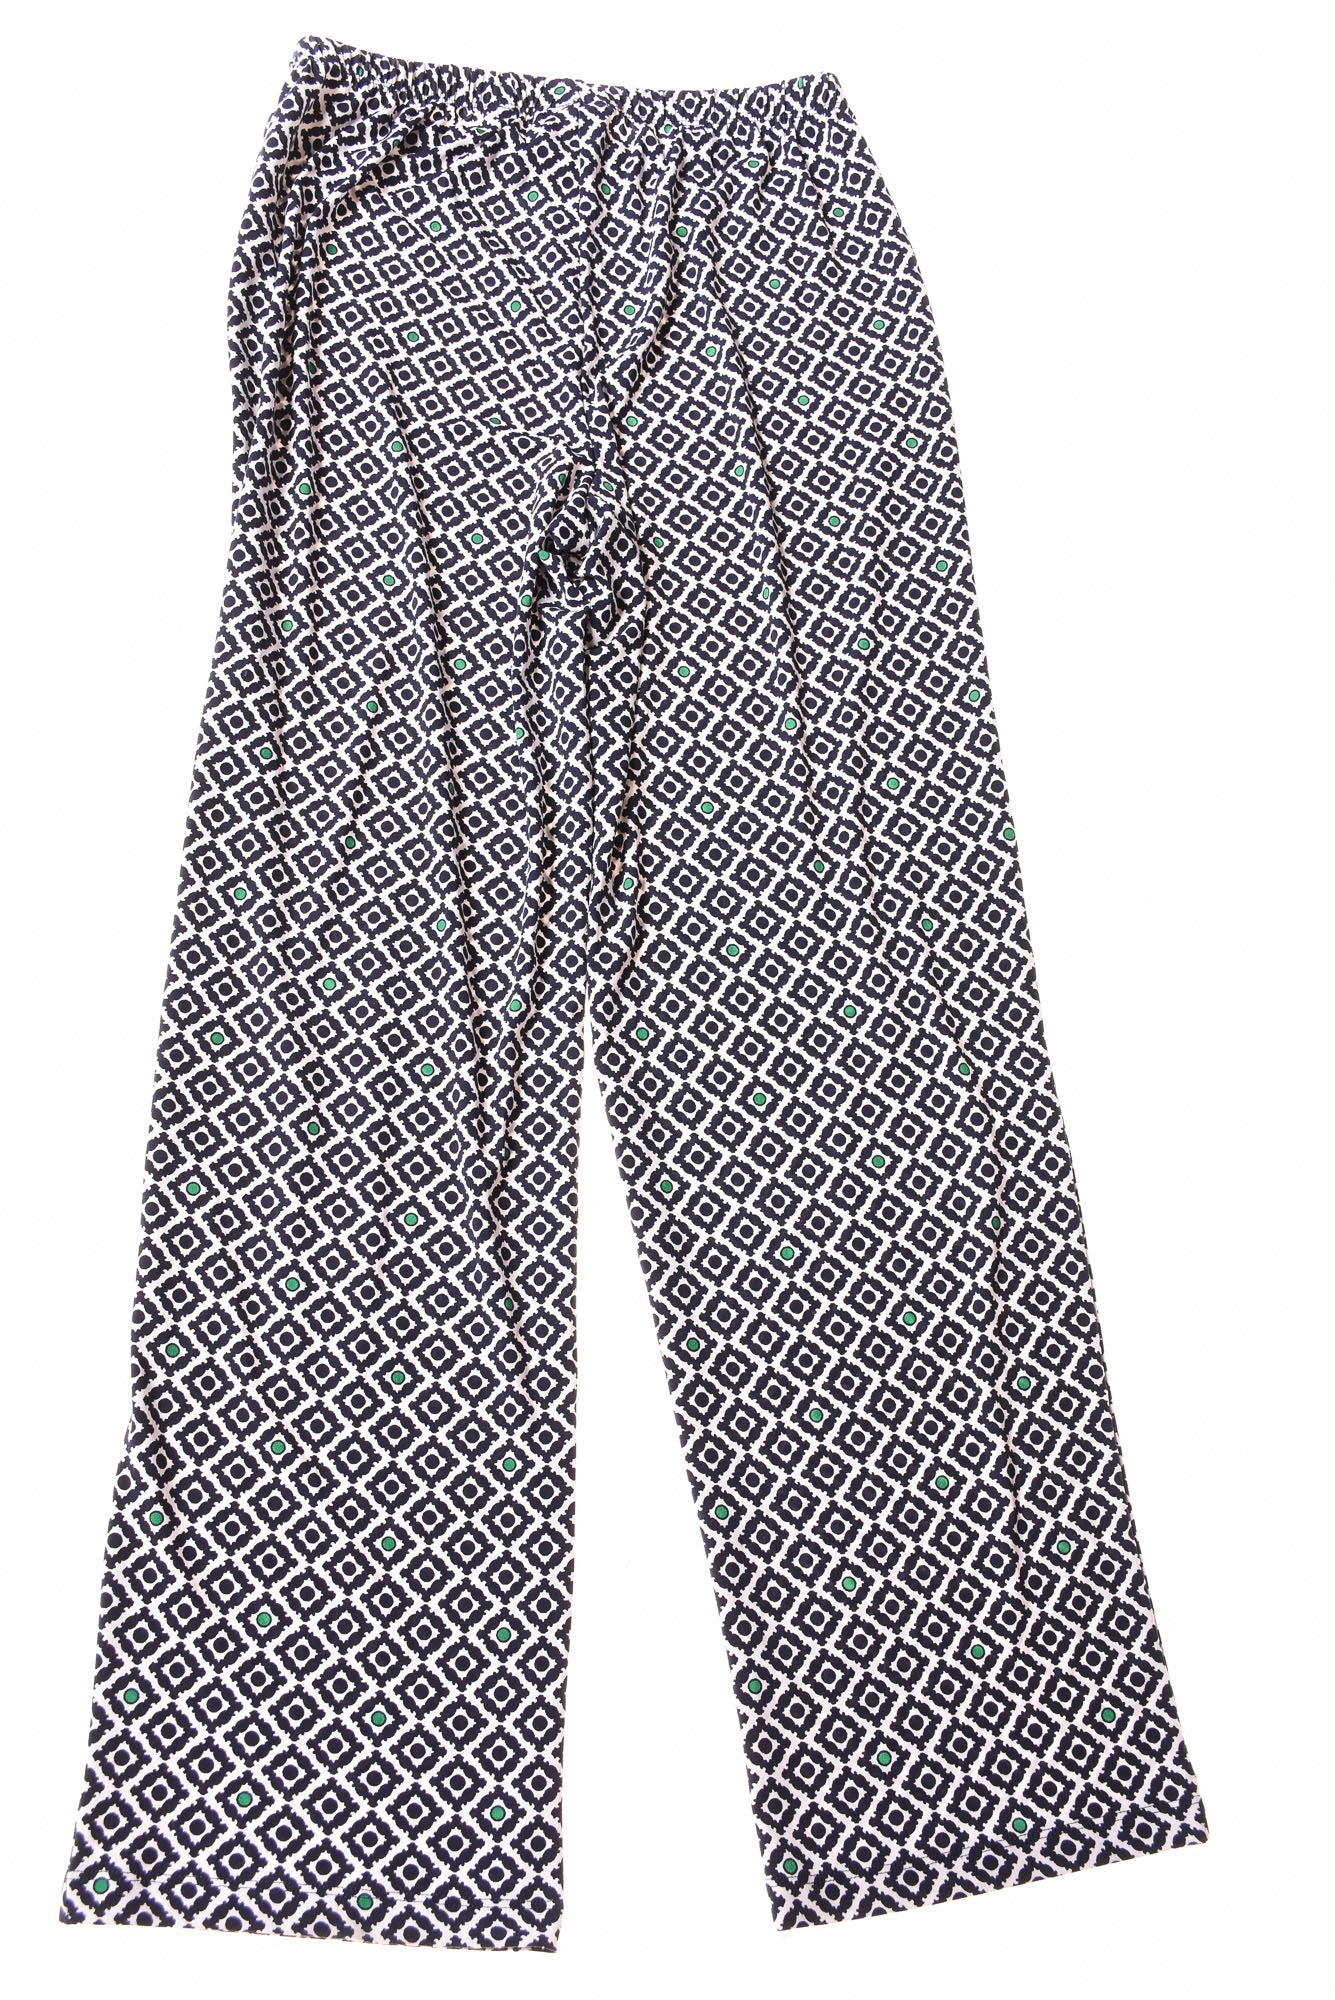 131bc803ff8a USED Easywear By Chico s Women s Pants 0 Blue   White   Print ...